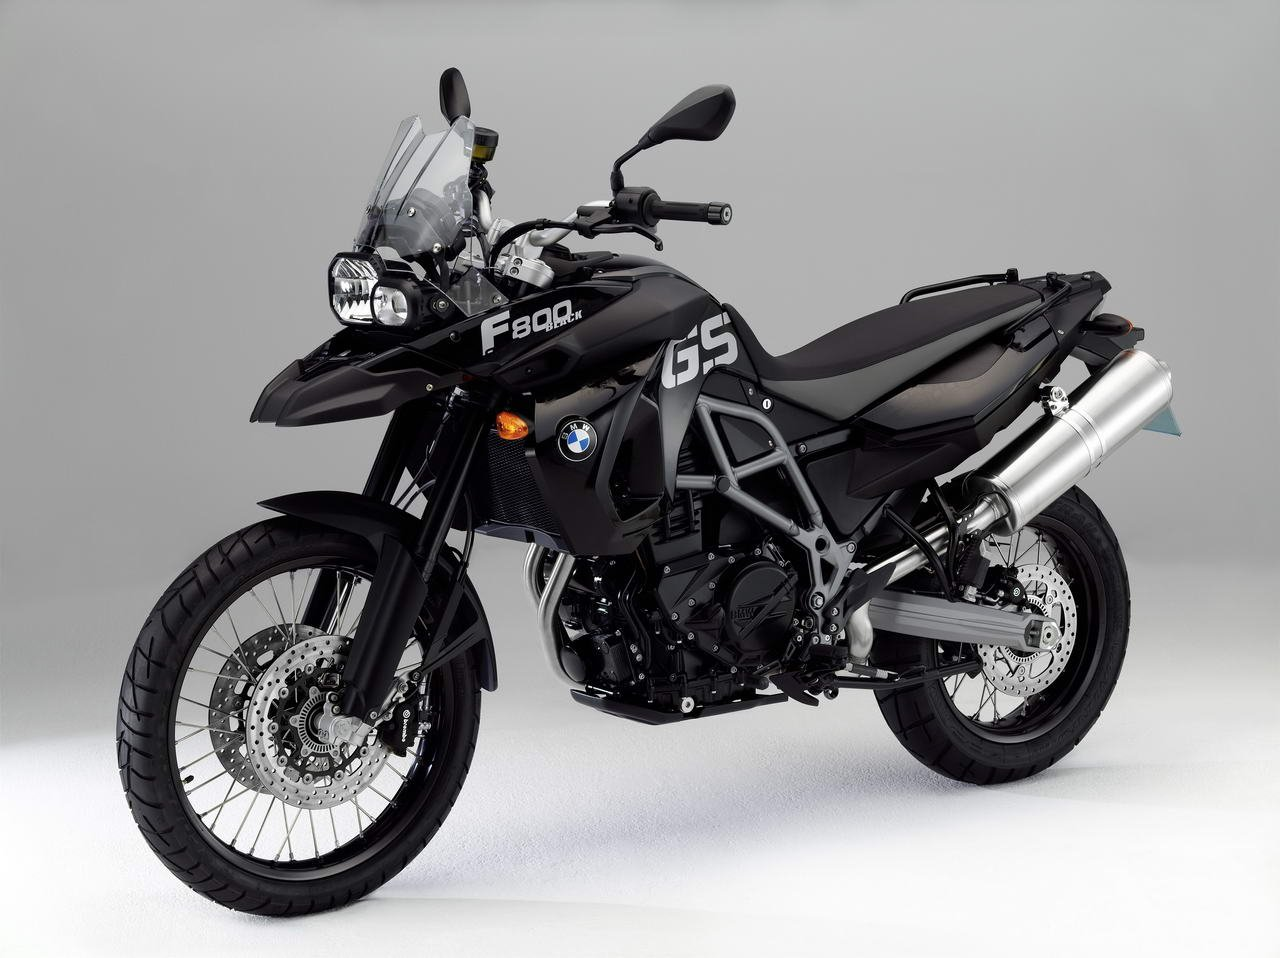 ficha t cnica da bmw f 800 gs 2008 a 2020. Black Bedroom Furniture Sets. Home Design Ideas